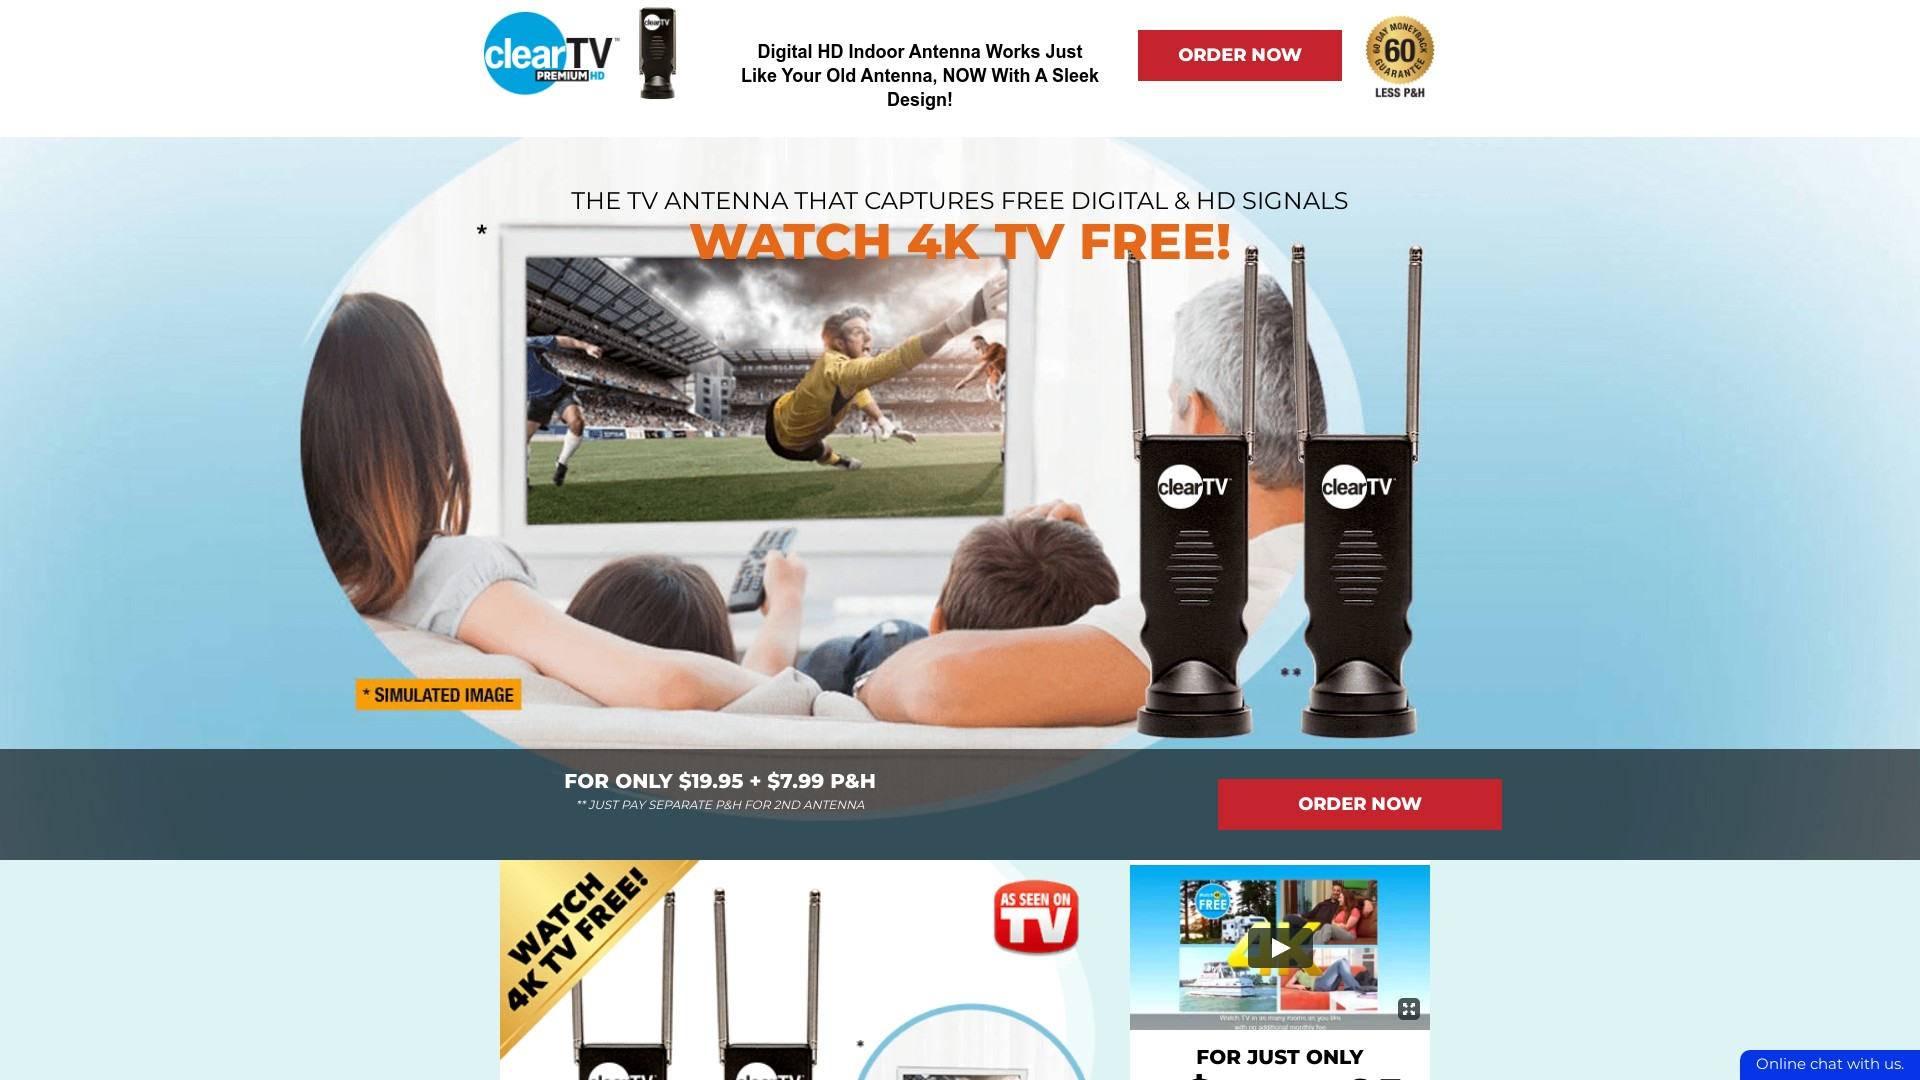 Is BuyClearTV.com a Scam? Review of the Digital HD Indoor Antenna